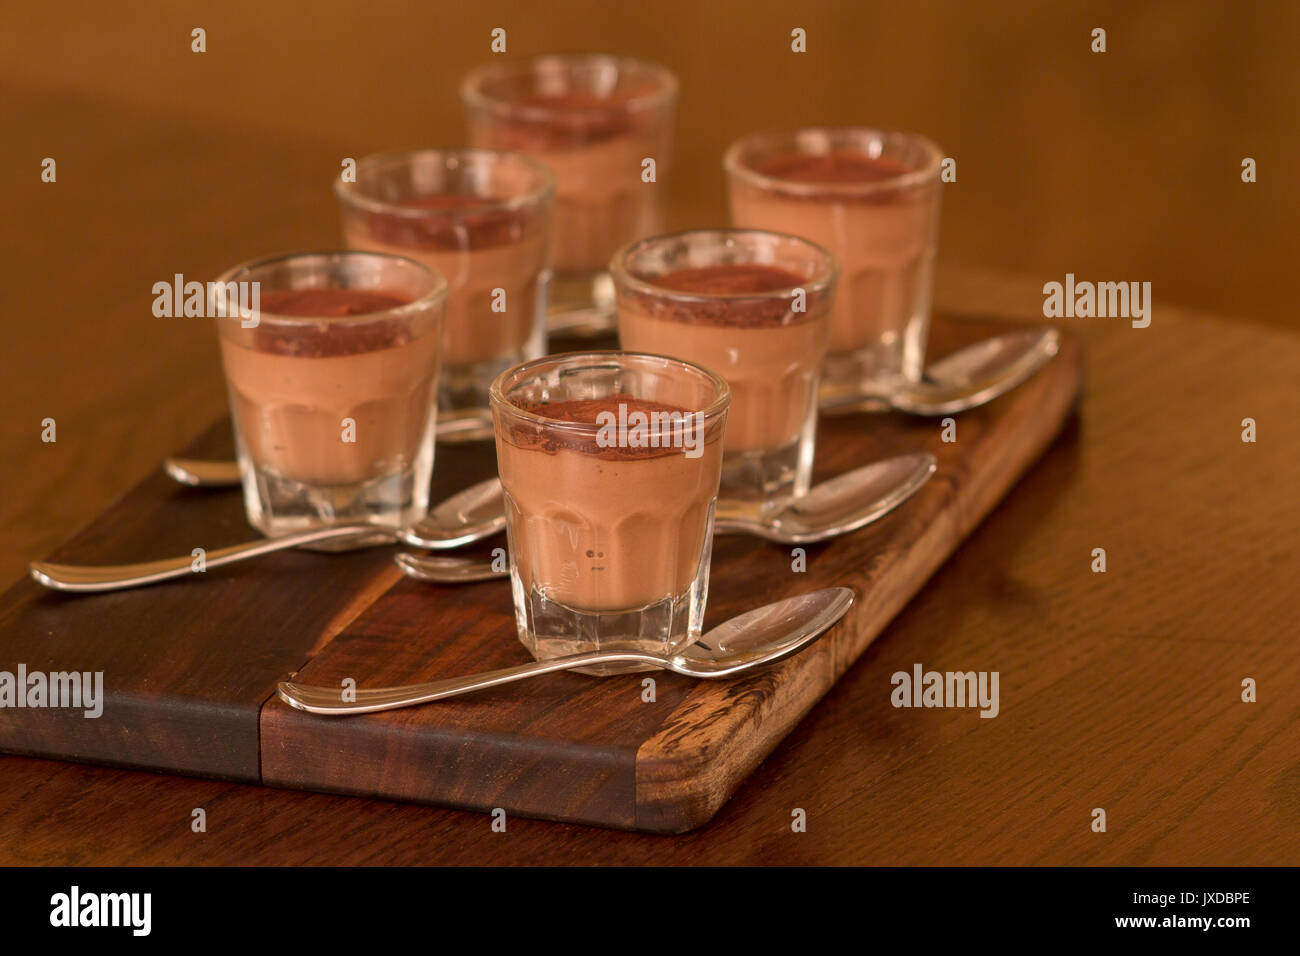 canapes - Stock Image